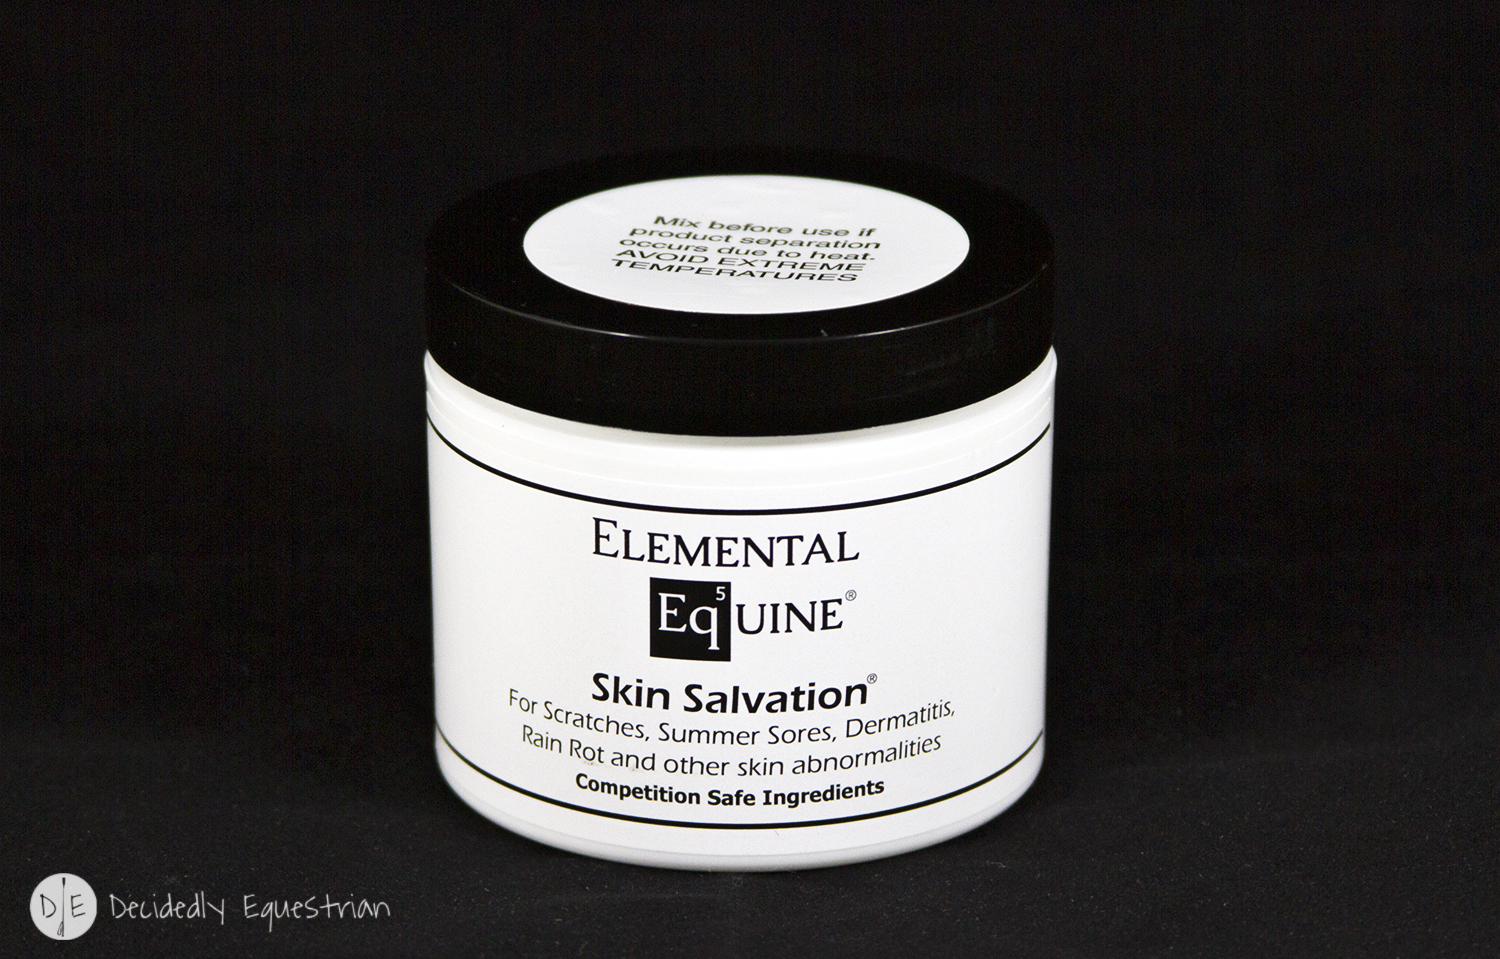 Elemental Equine Skin Salvation Balm Review